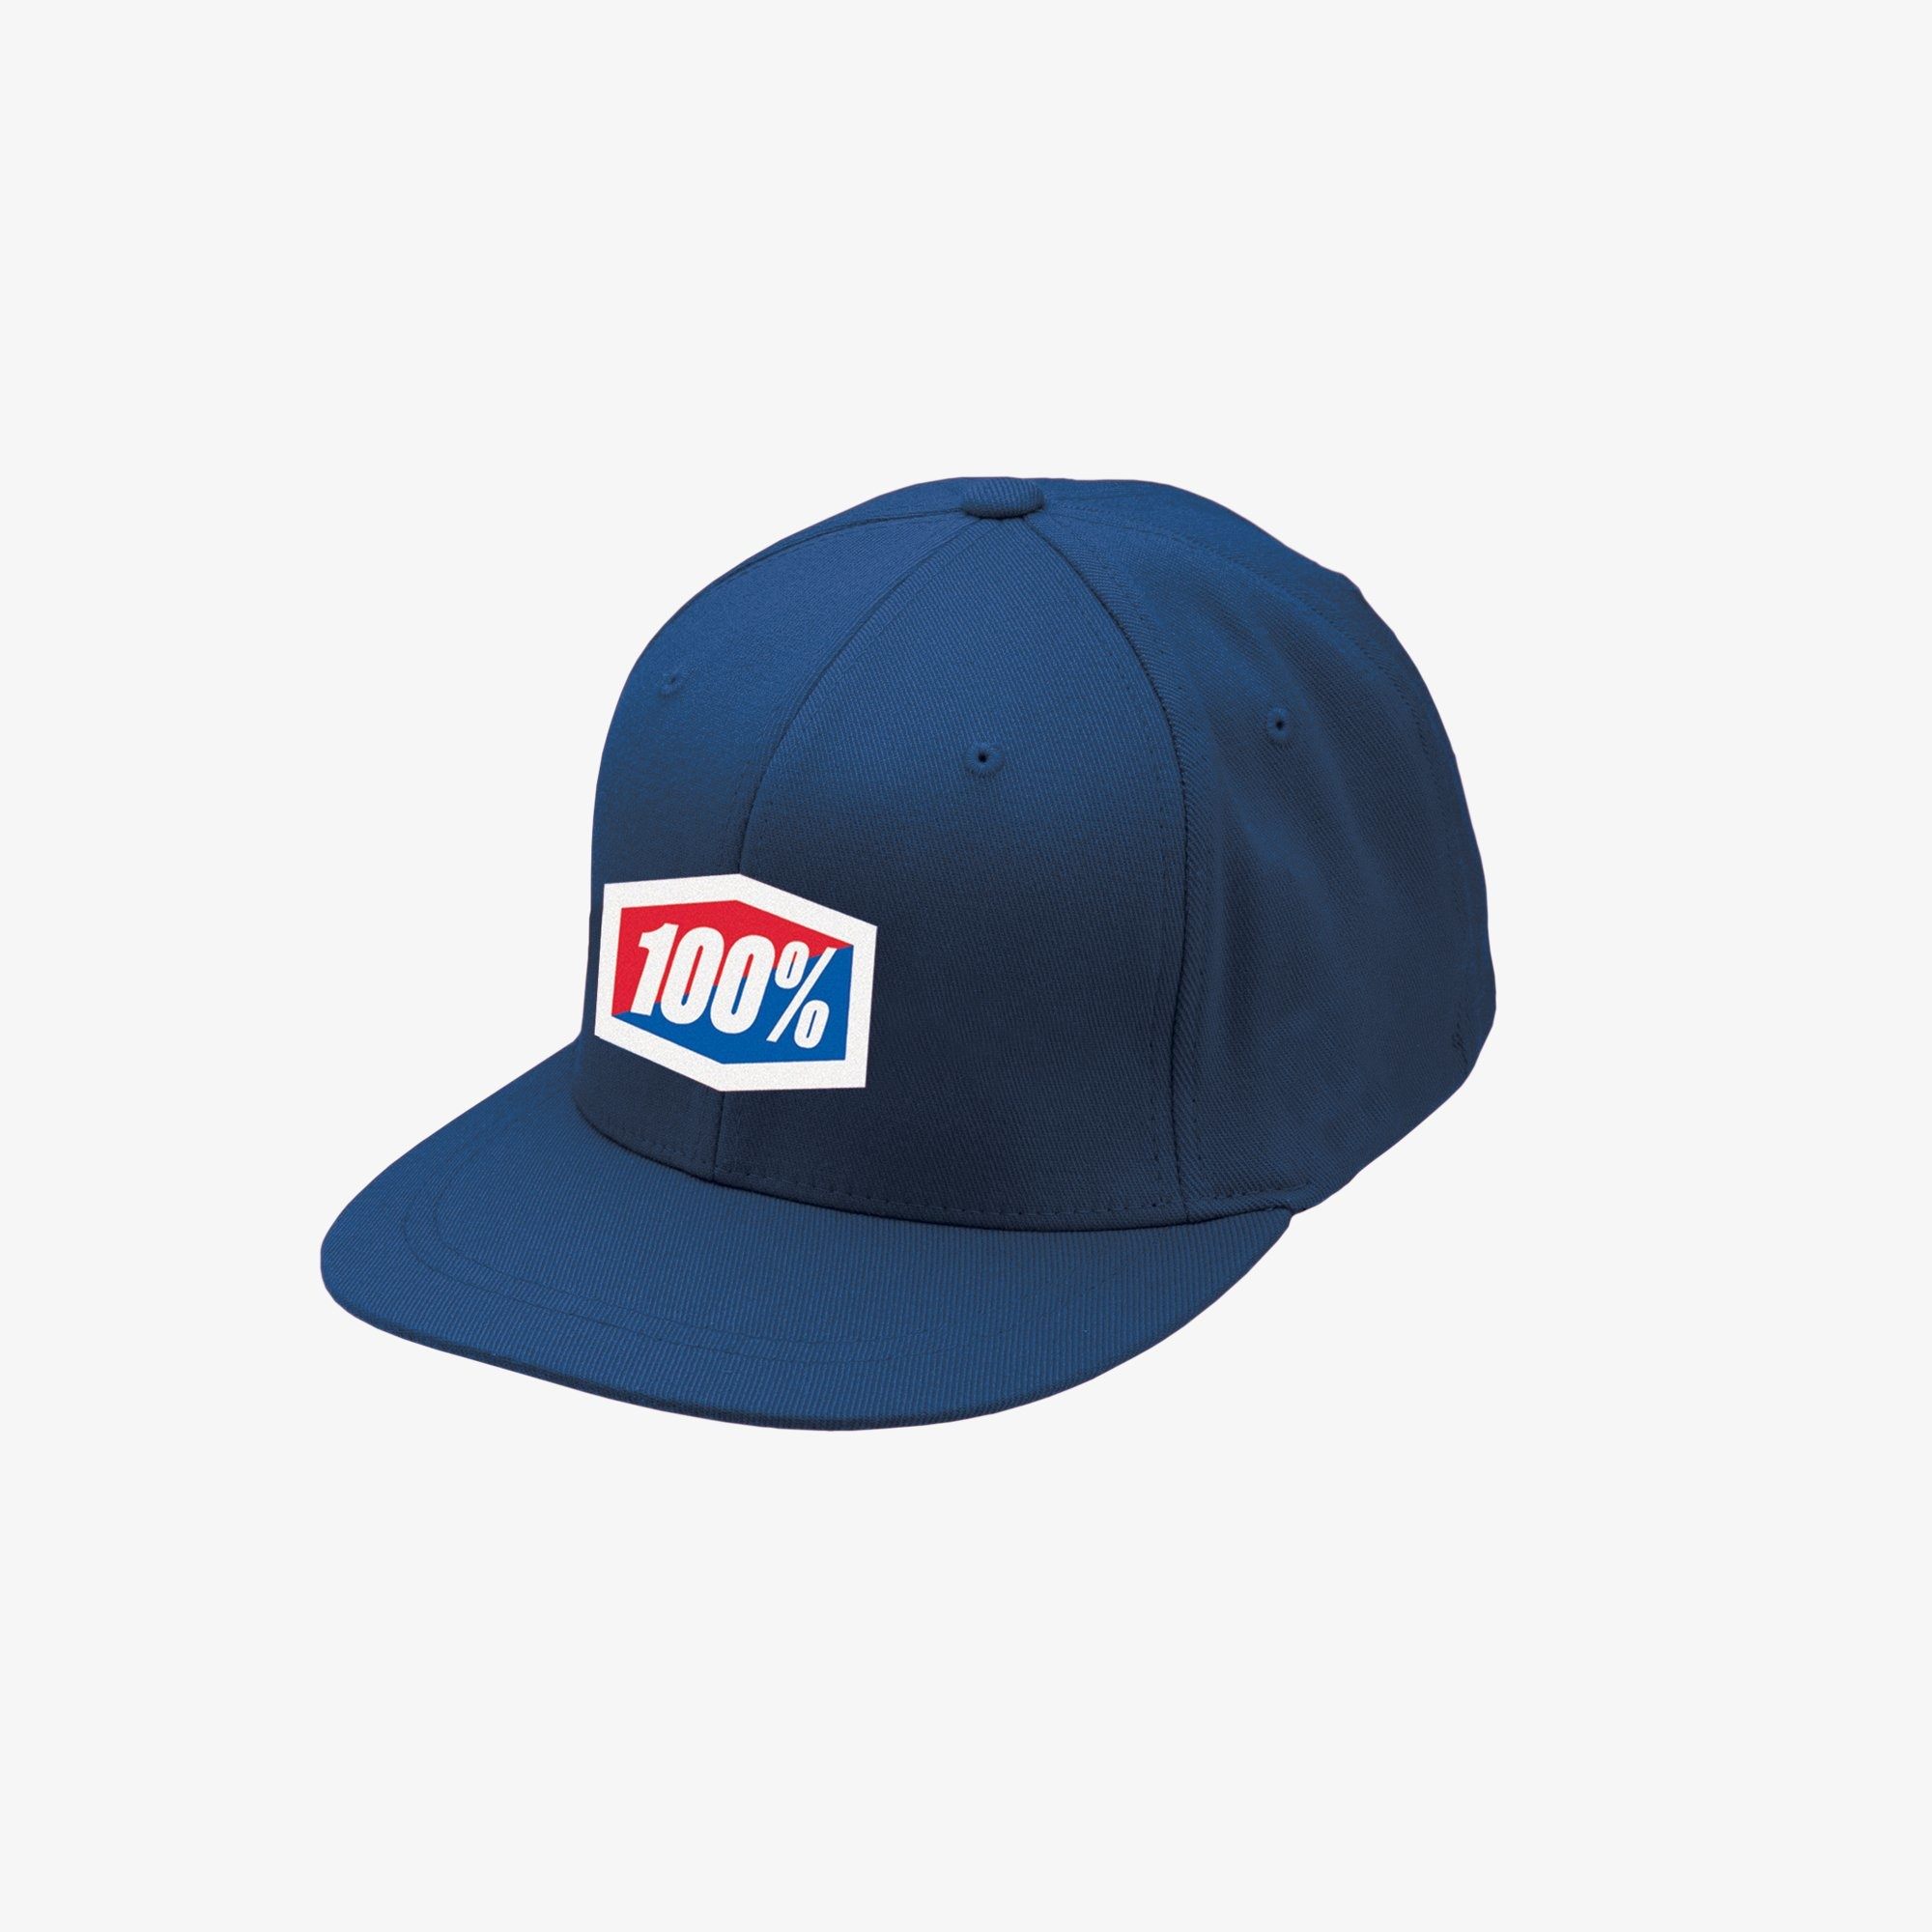 Gray Fit All Flex Fitted Hat